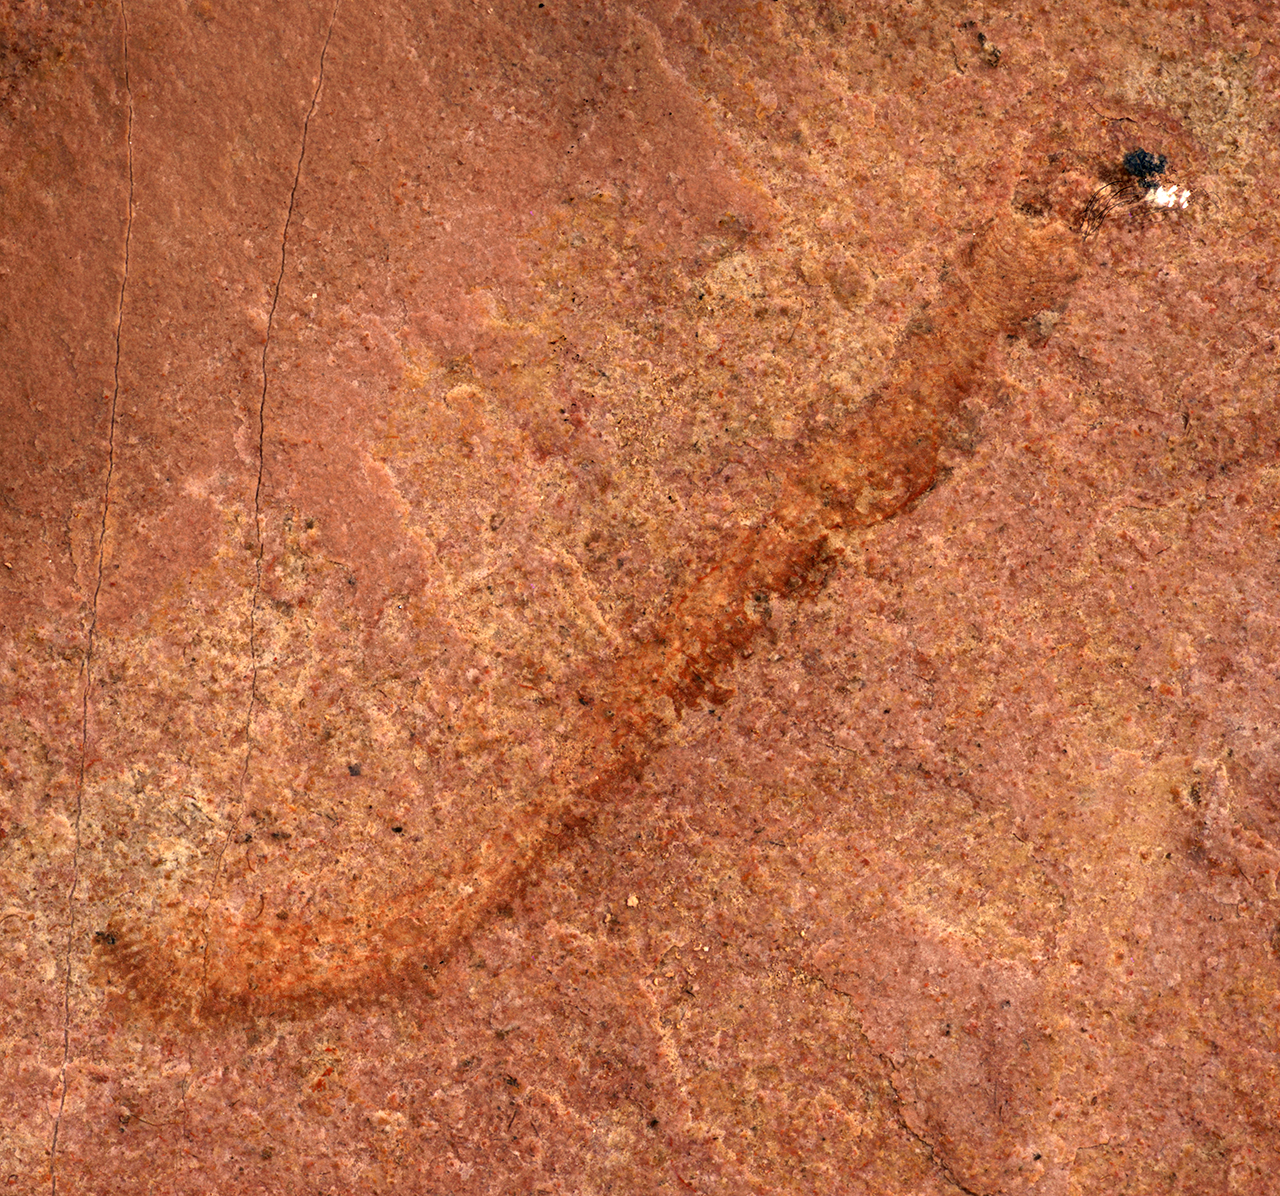 The worm-like creature's fossil is visible as dark red rock in slightly lighter red rock